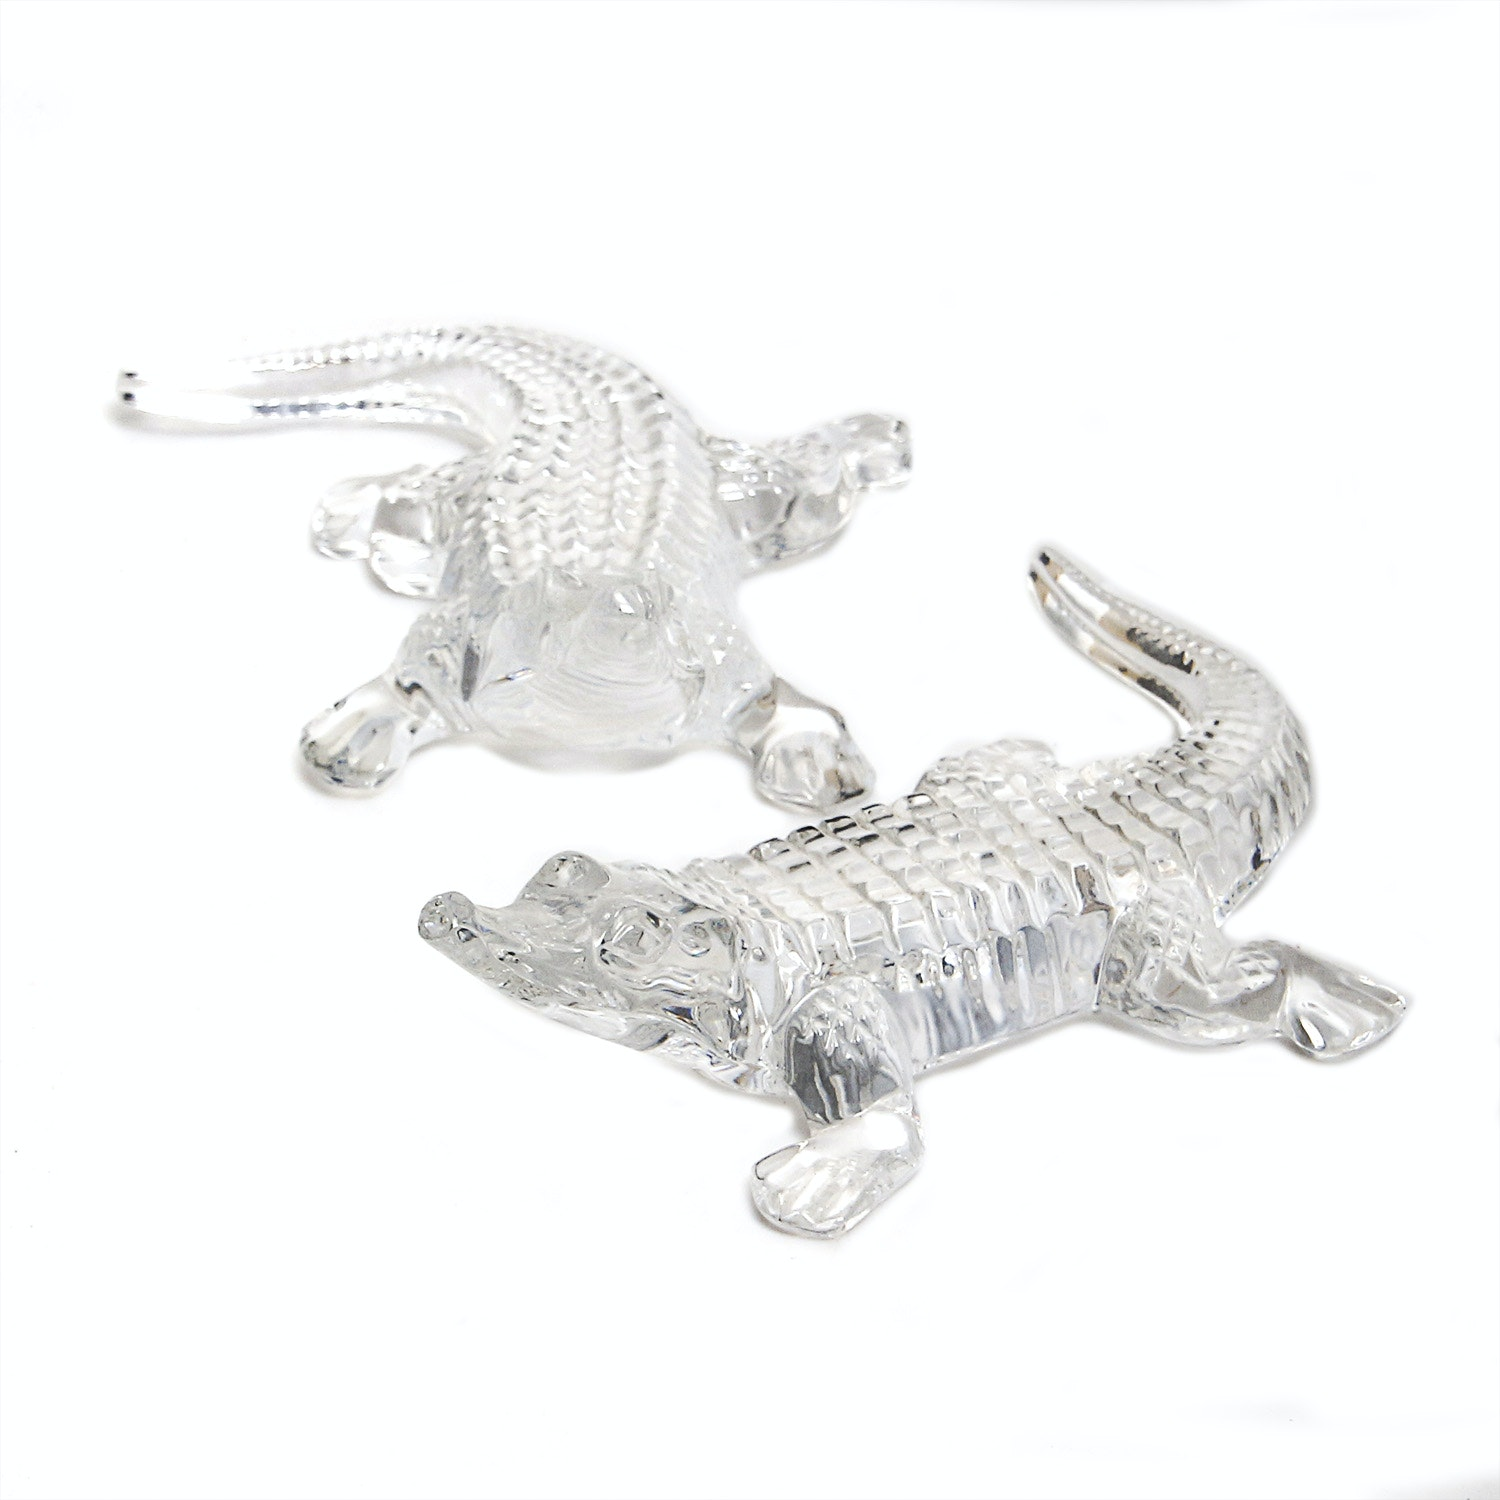 Two Waterford Crystal Alligators